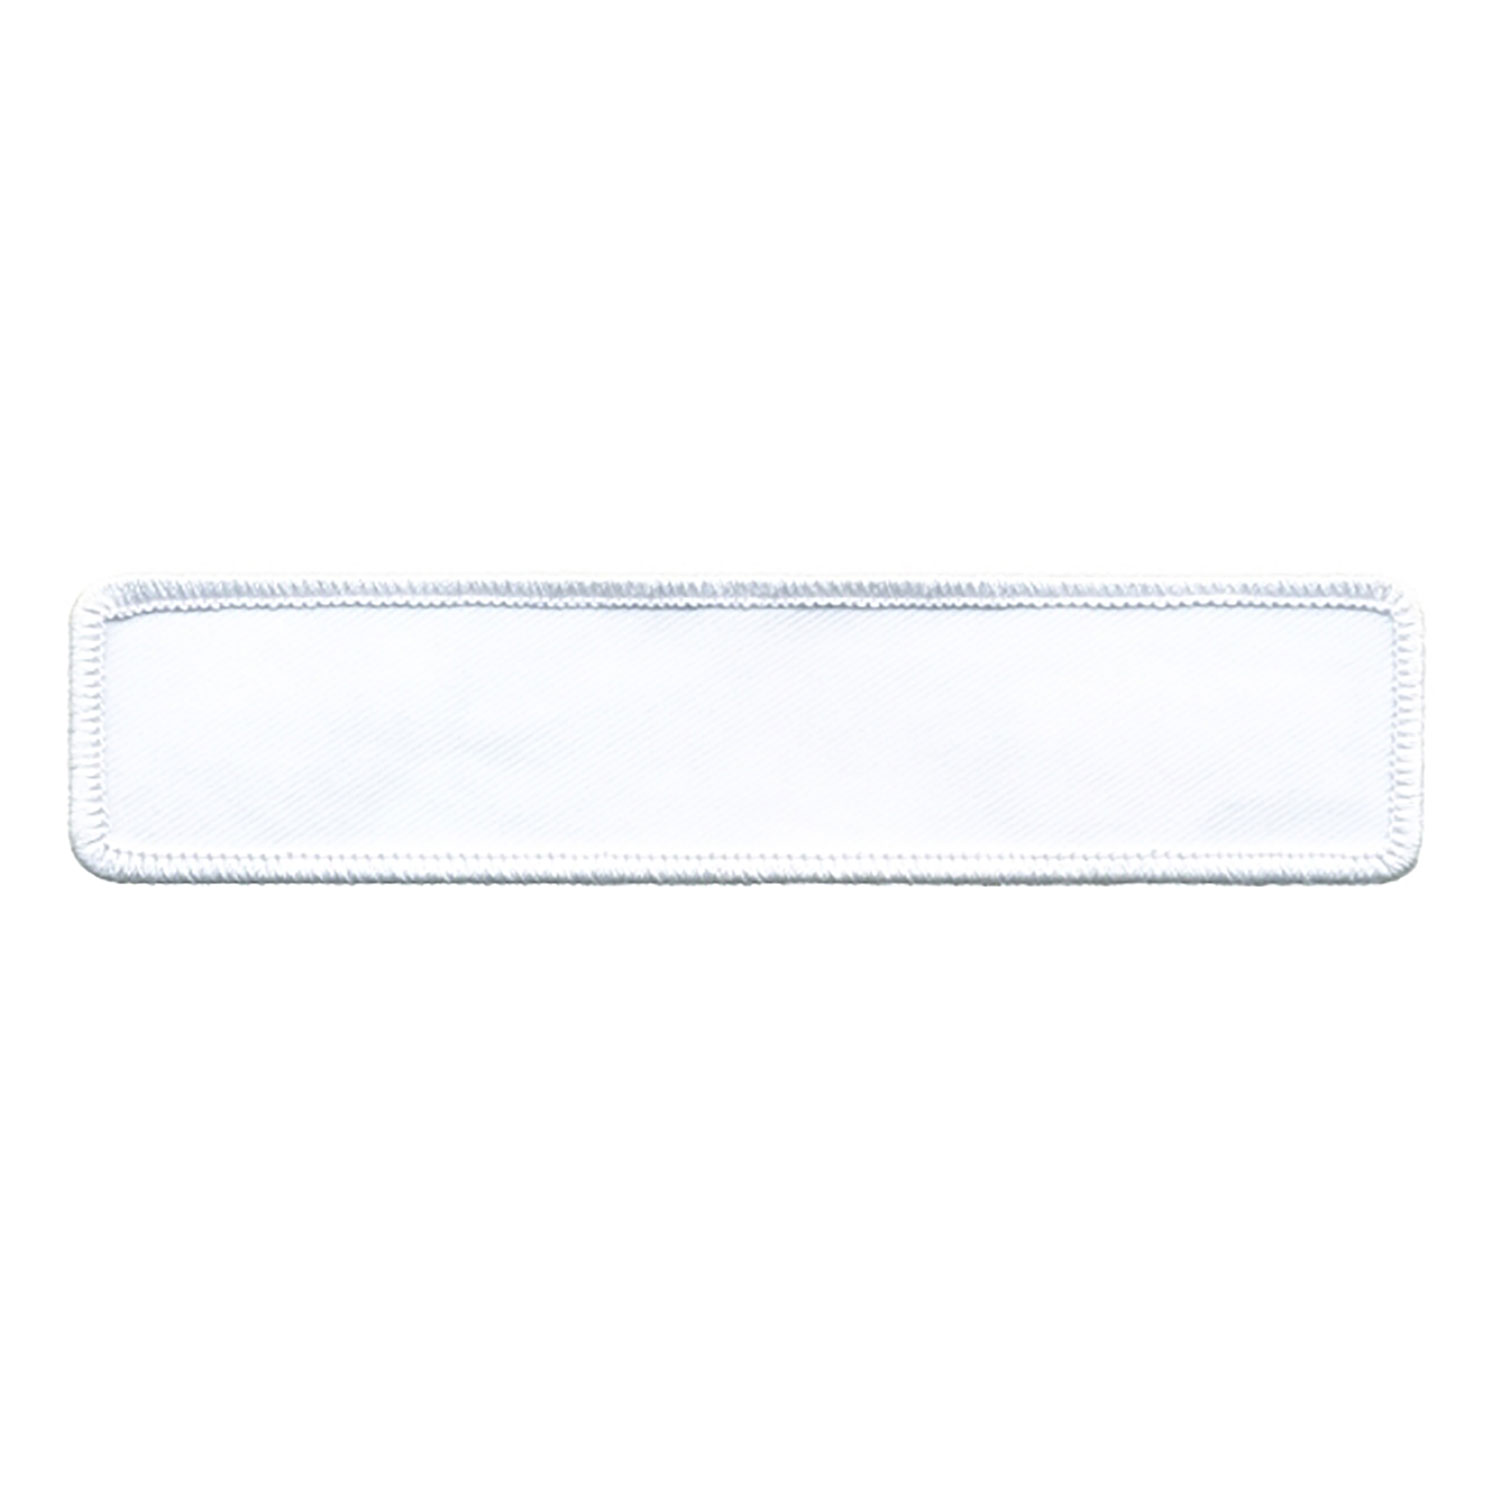 "Hero's Pride Embroiderable Blank Rectangle 1"" x 5"" (Not Appl"